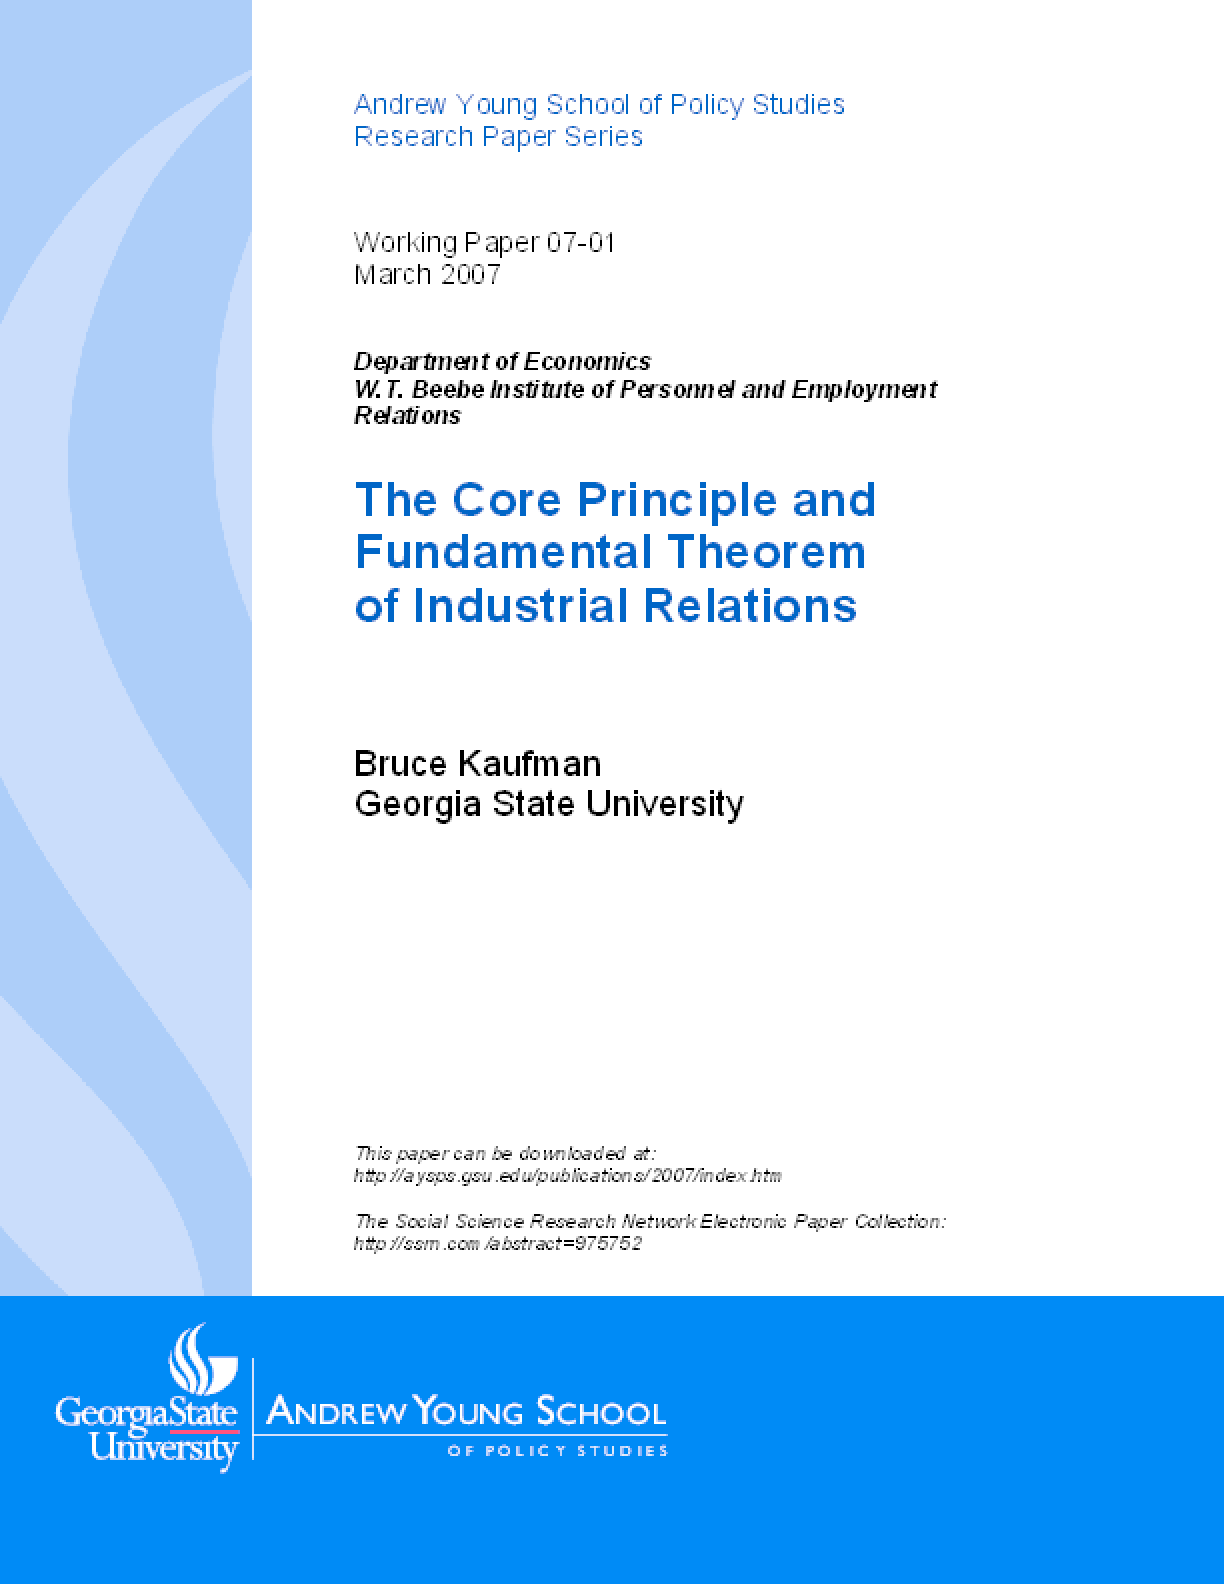 The Core Principle and Fundamental Theorem of Industrial Relations